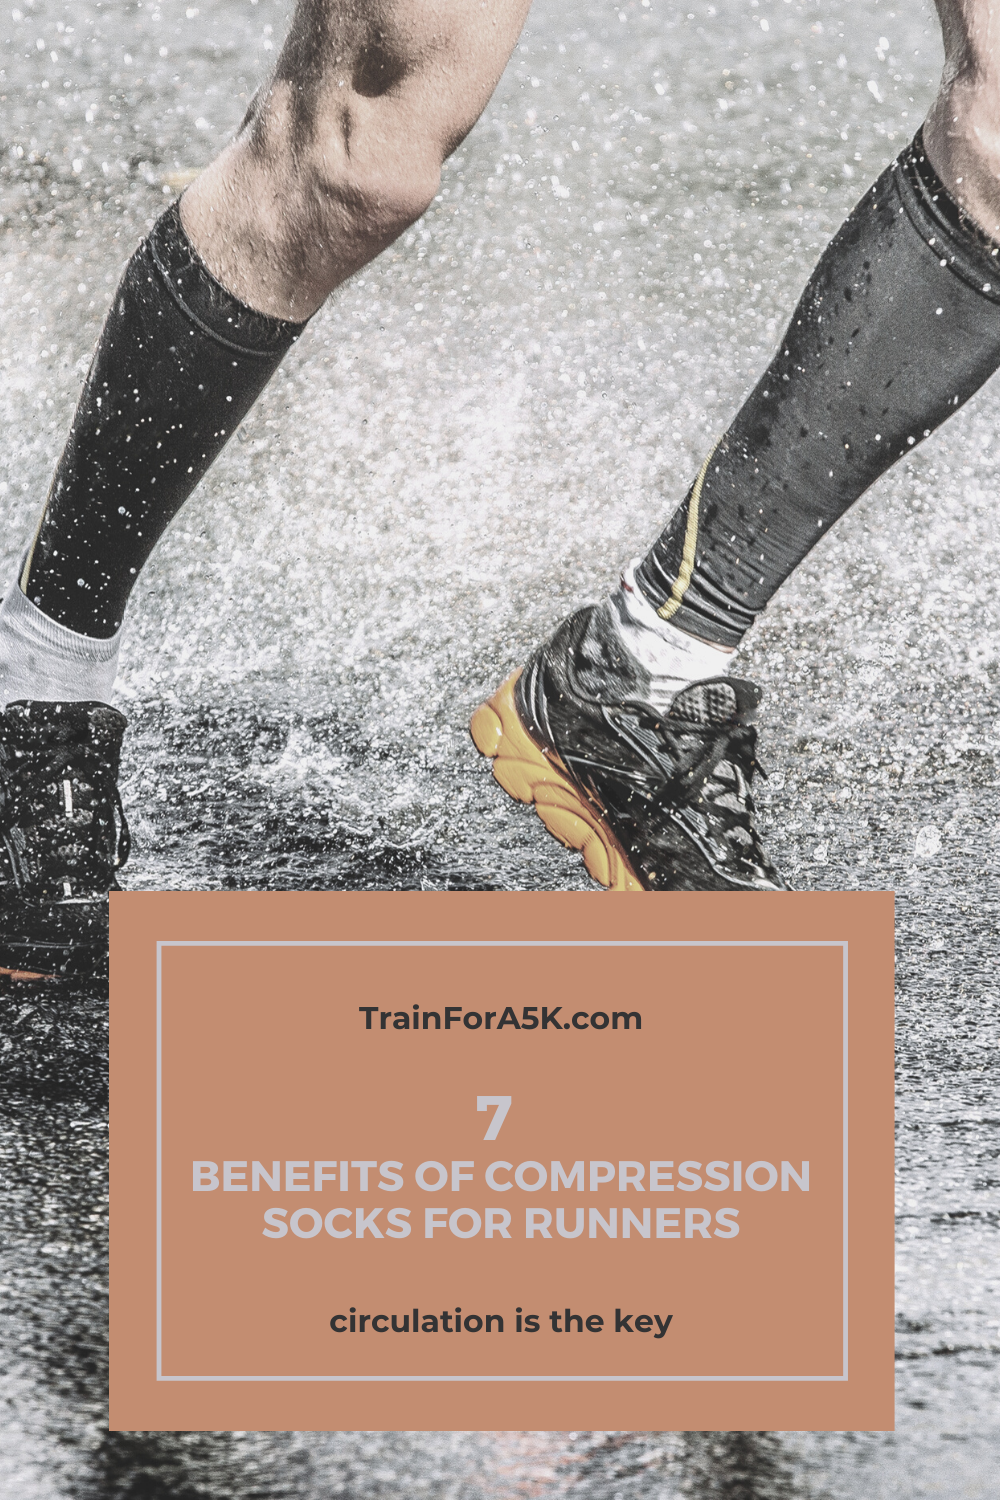 The 7 Benefits Of Running Compression Socks Train For A 5k Com Compression Socks Benefits Compression Socks Benefits Of Running